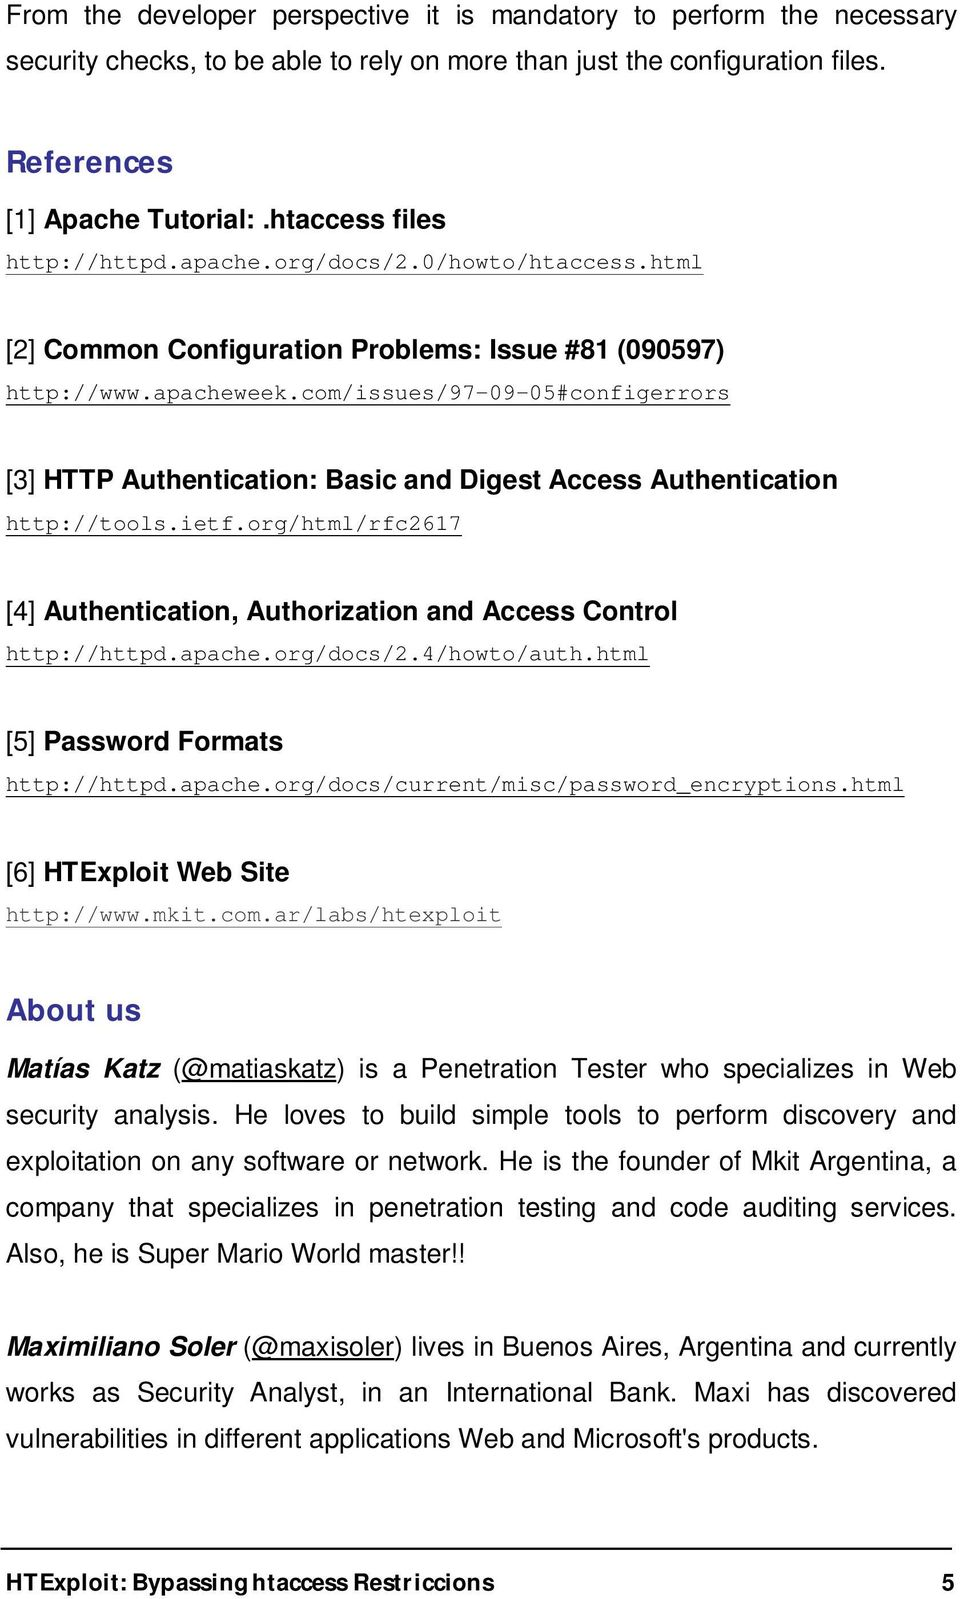 com/issues/97-09-05#configerrors [3] HTTP Authentication: Basic and Digest Access Authentication http://tools.ietf.org/html/rfc2617 [4] Authentication, Authorization and Access Control http://httpd.